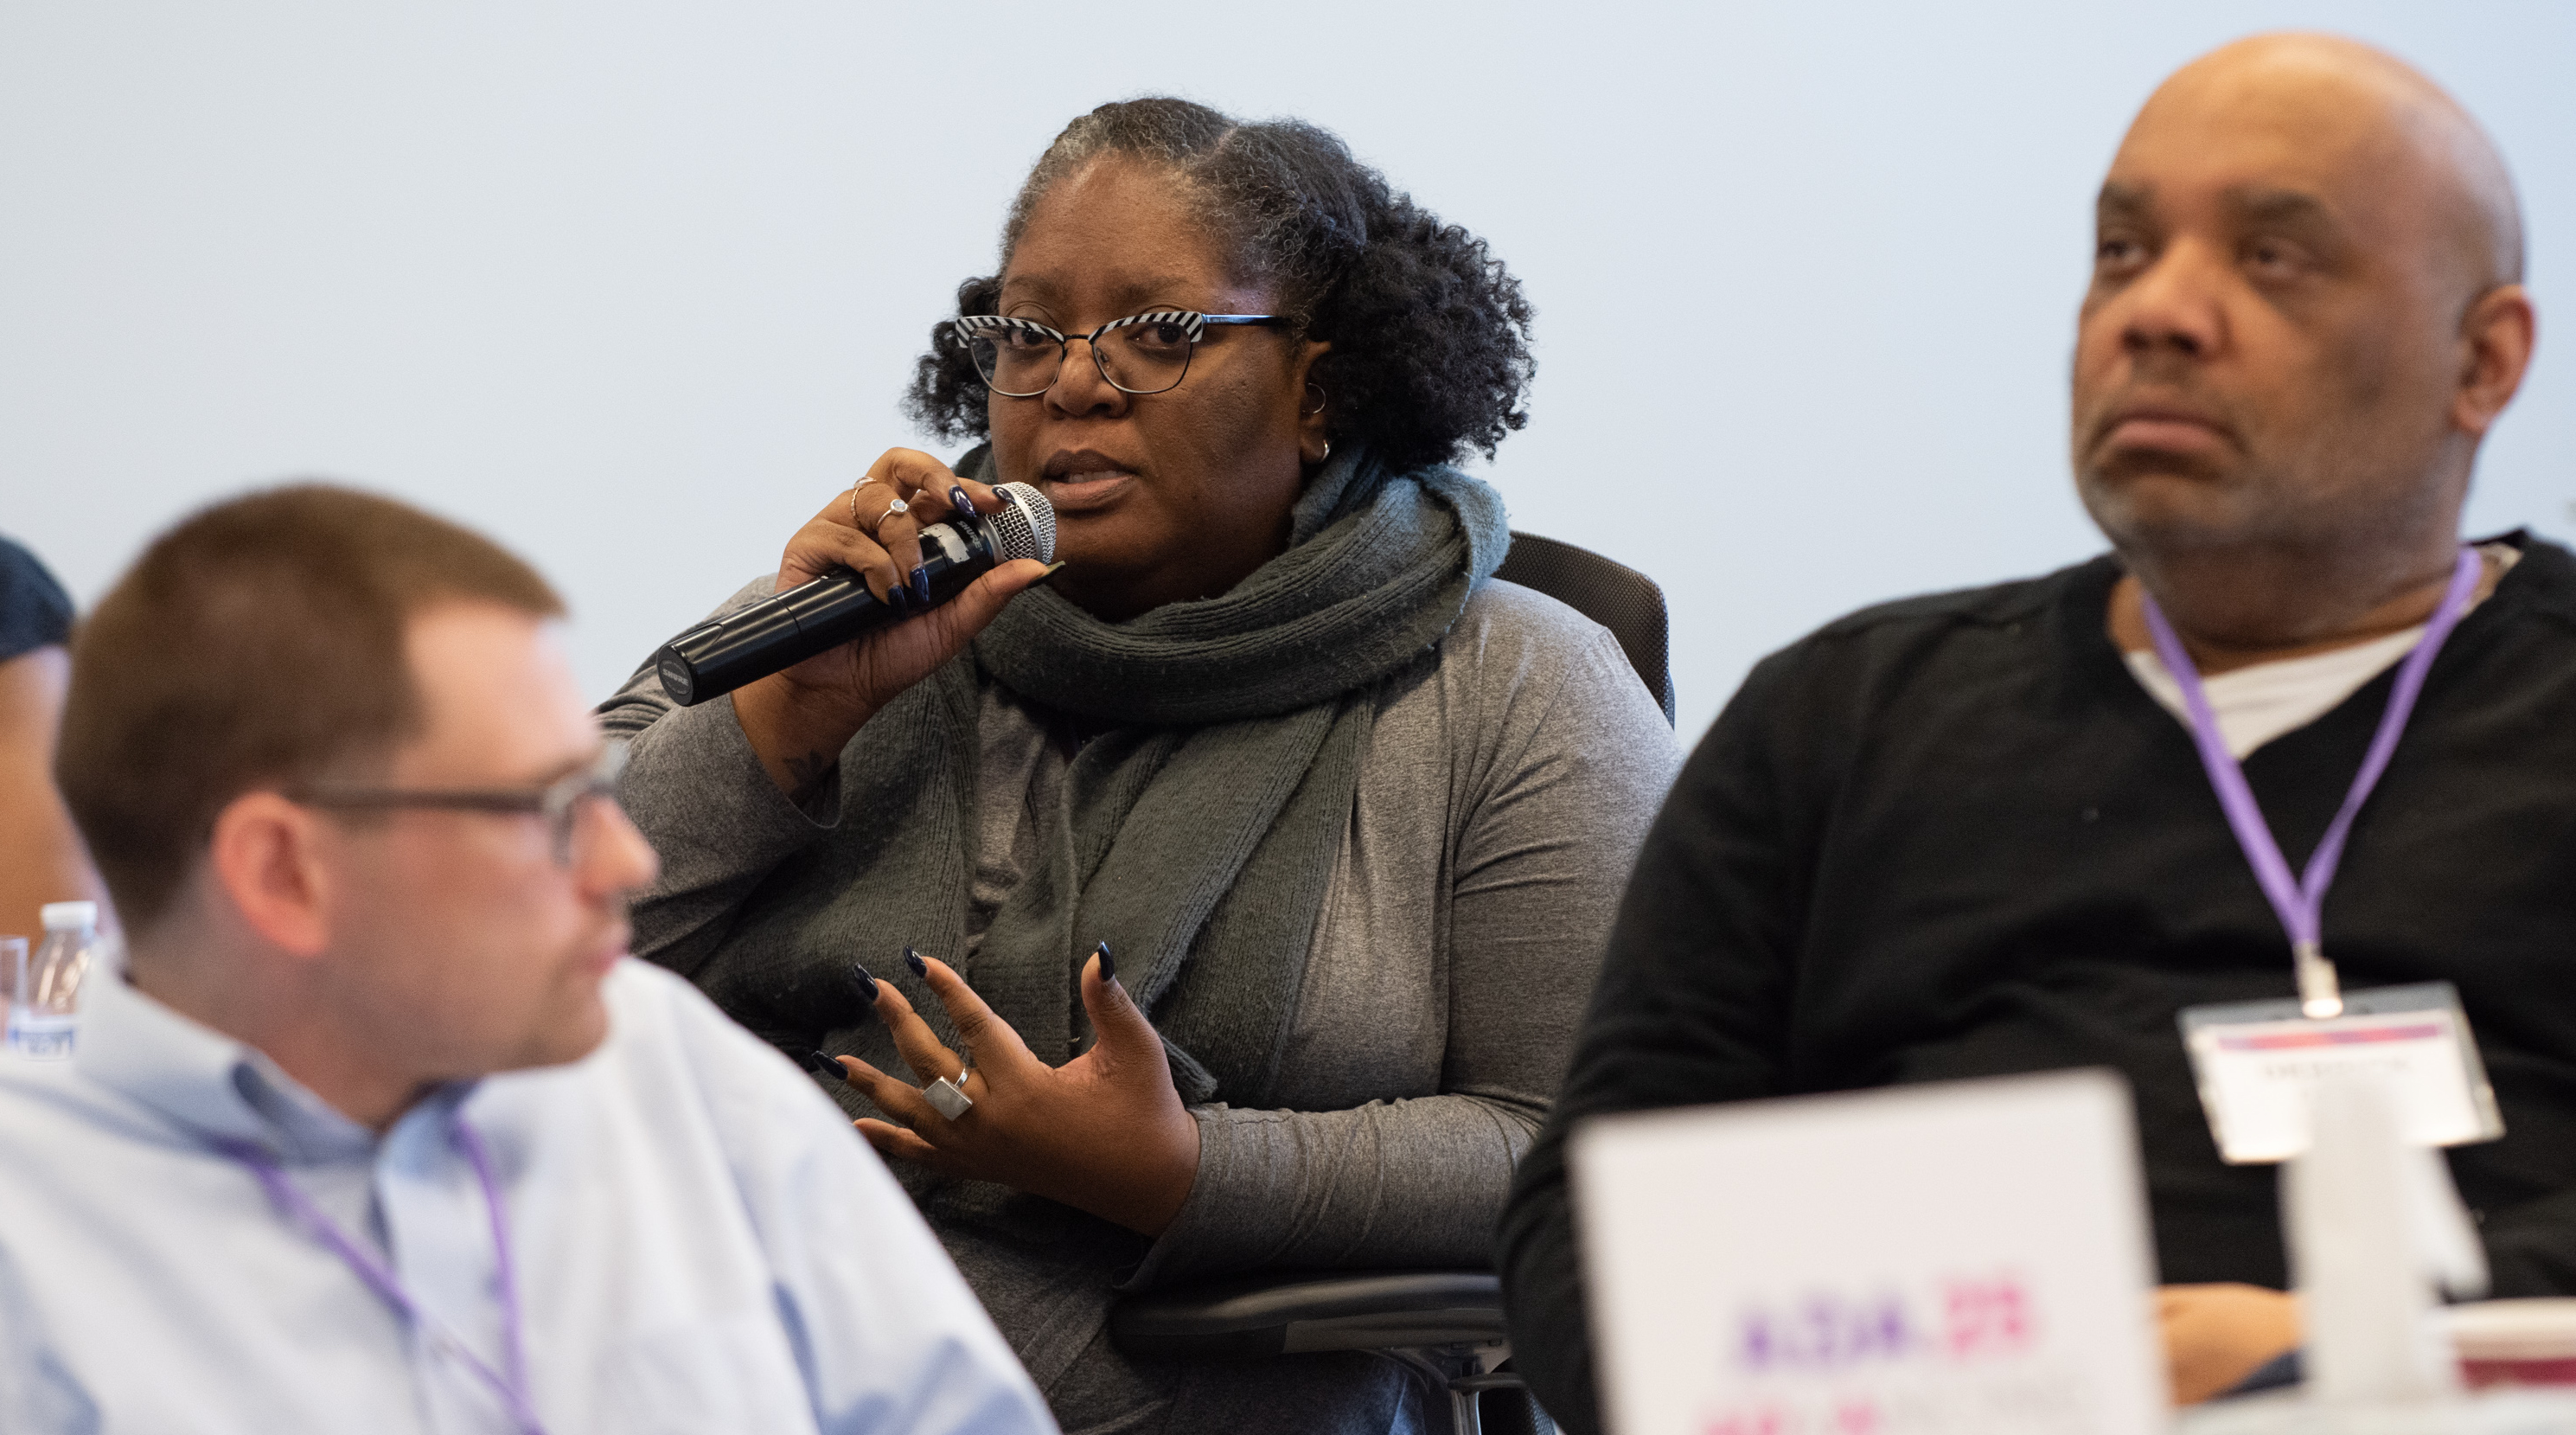 Laura is seated in a room with two other people listening in the foreground. She is speaking into a microphone and her expression is contemplative. She has curly black hair, black and white striped cat-eye glasses, and dark-tone skin.